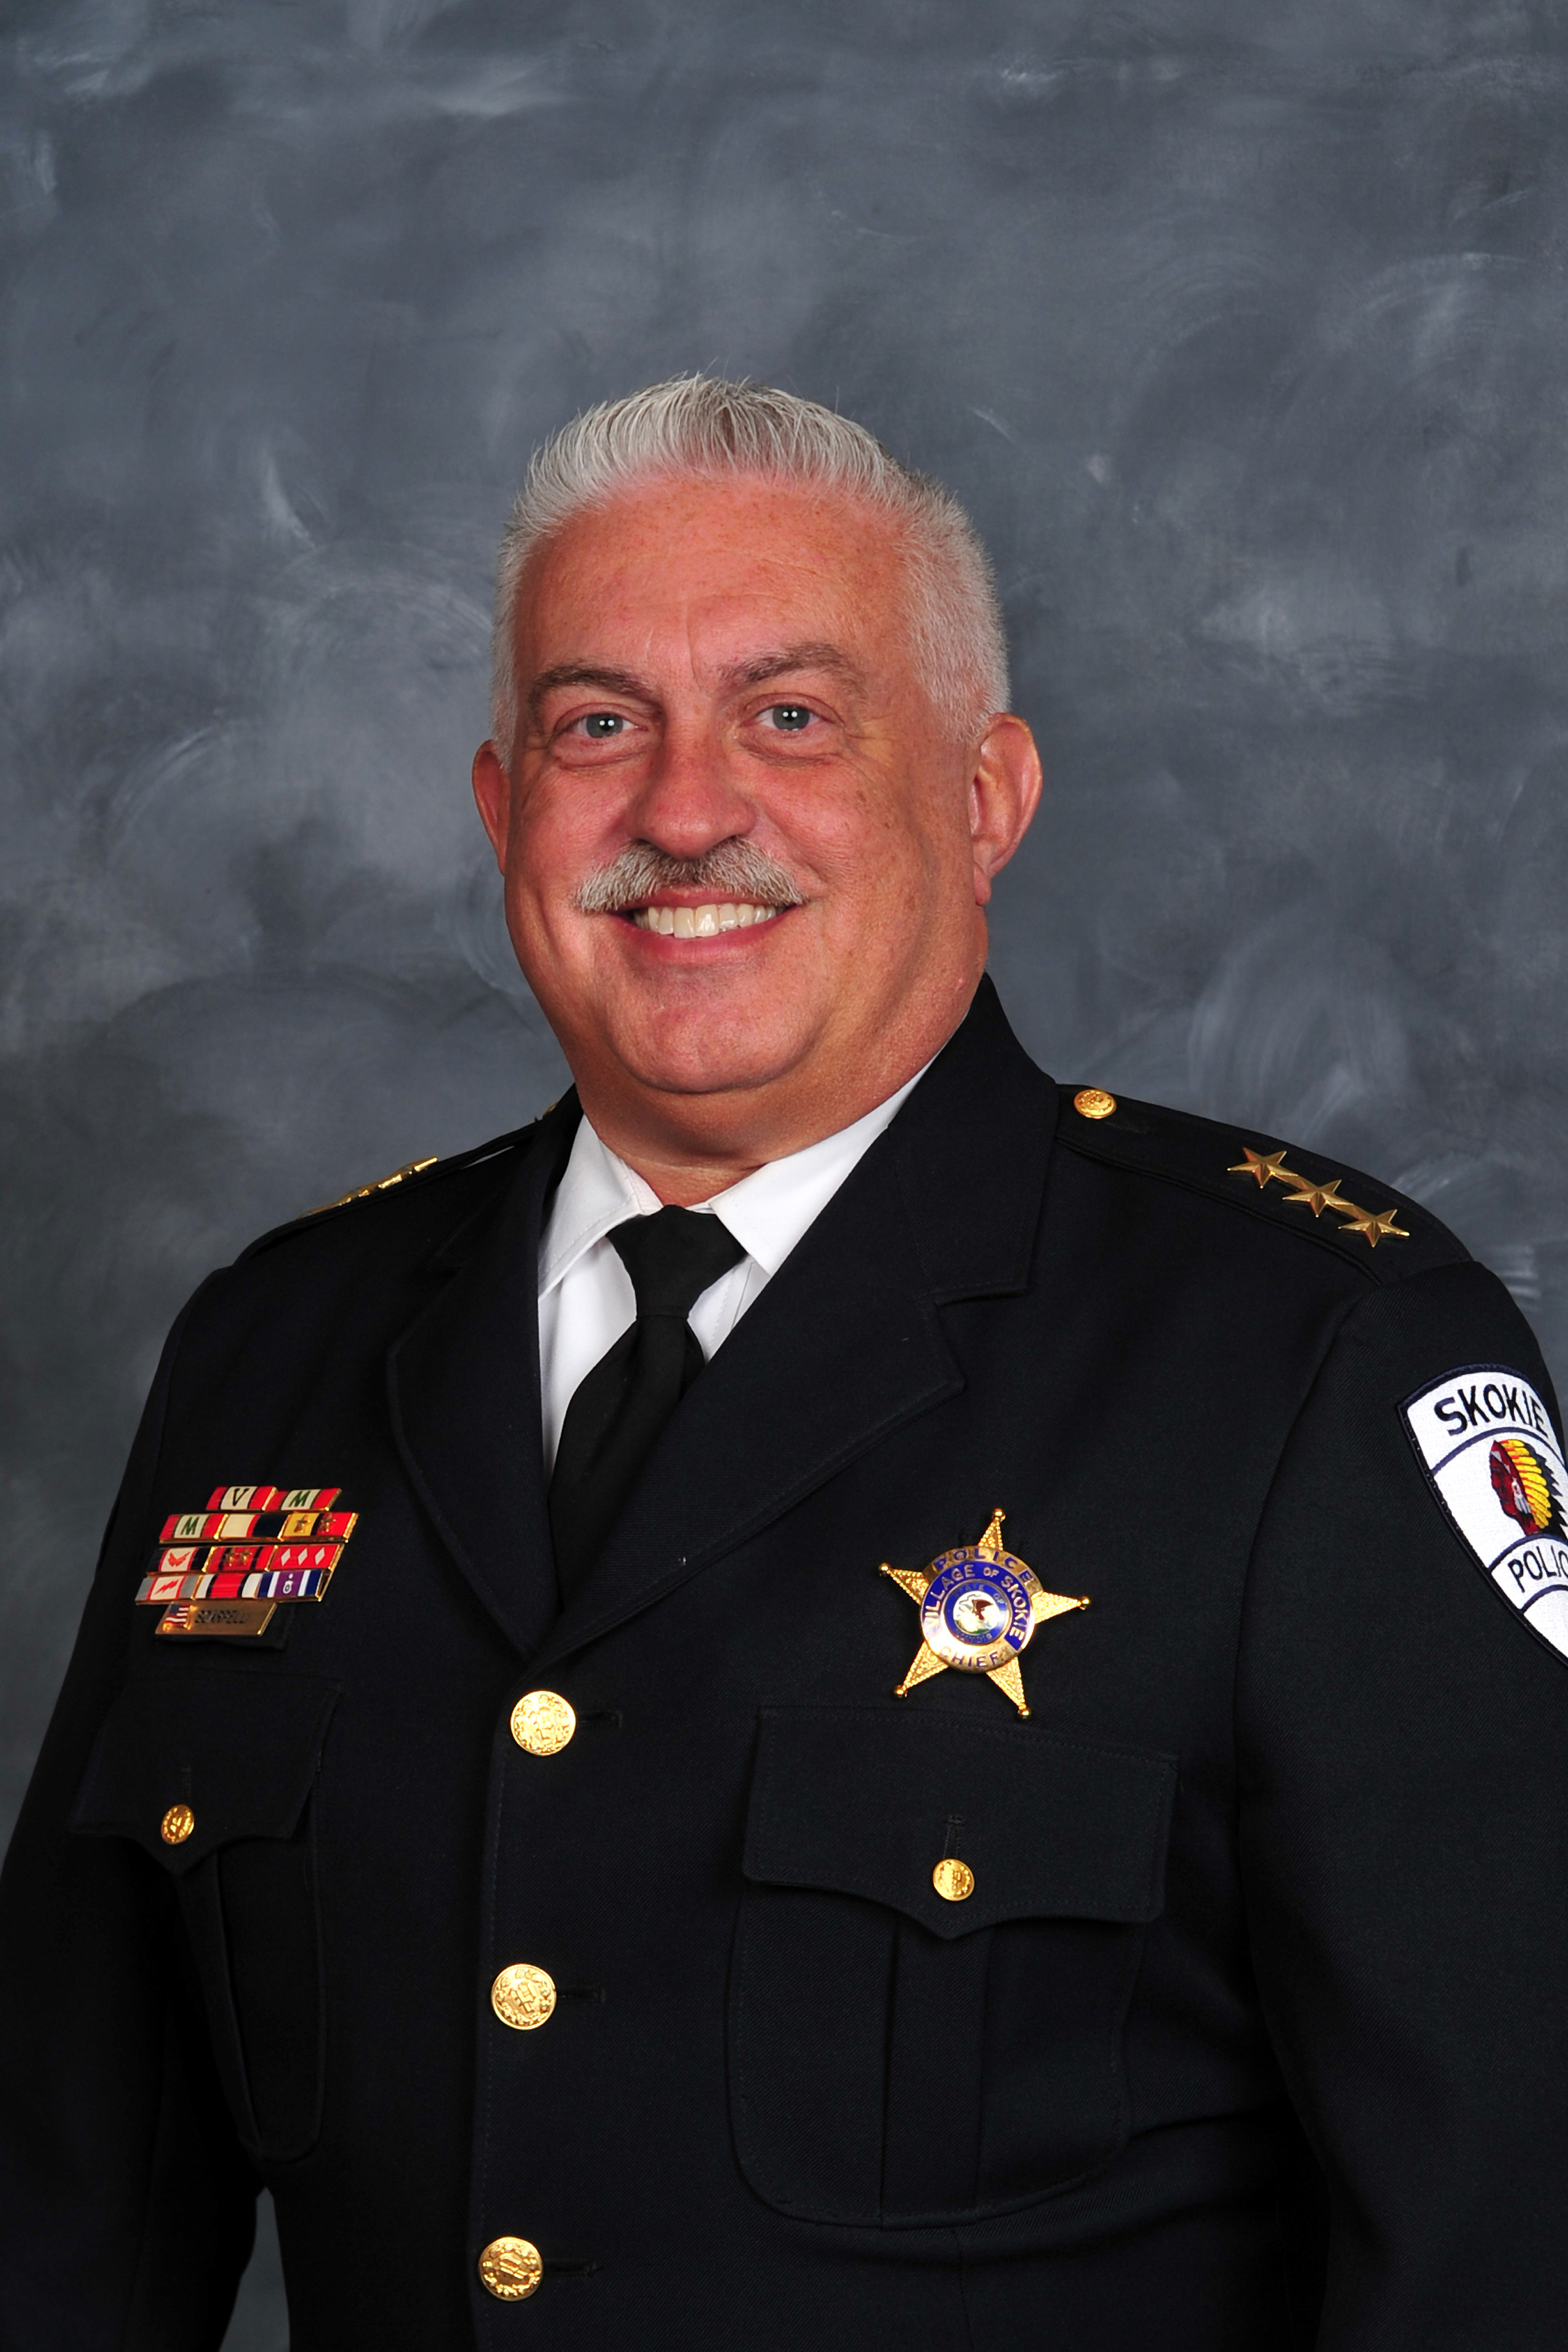 Police Chief Anthony Scarpelli